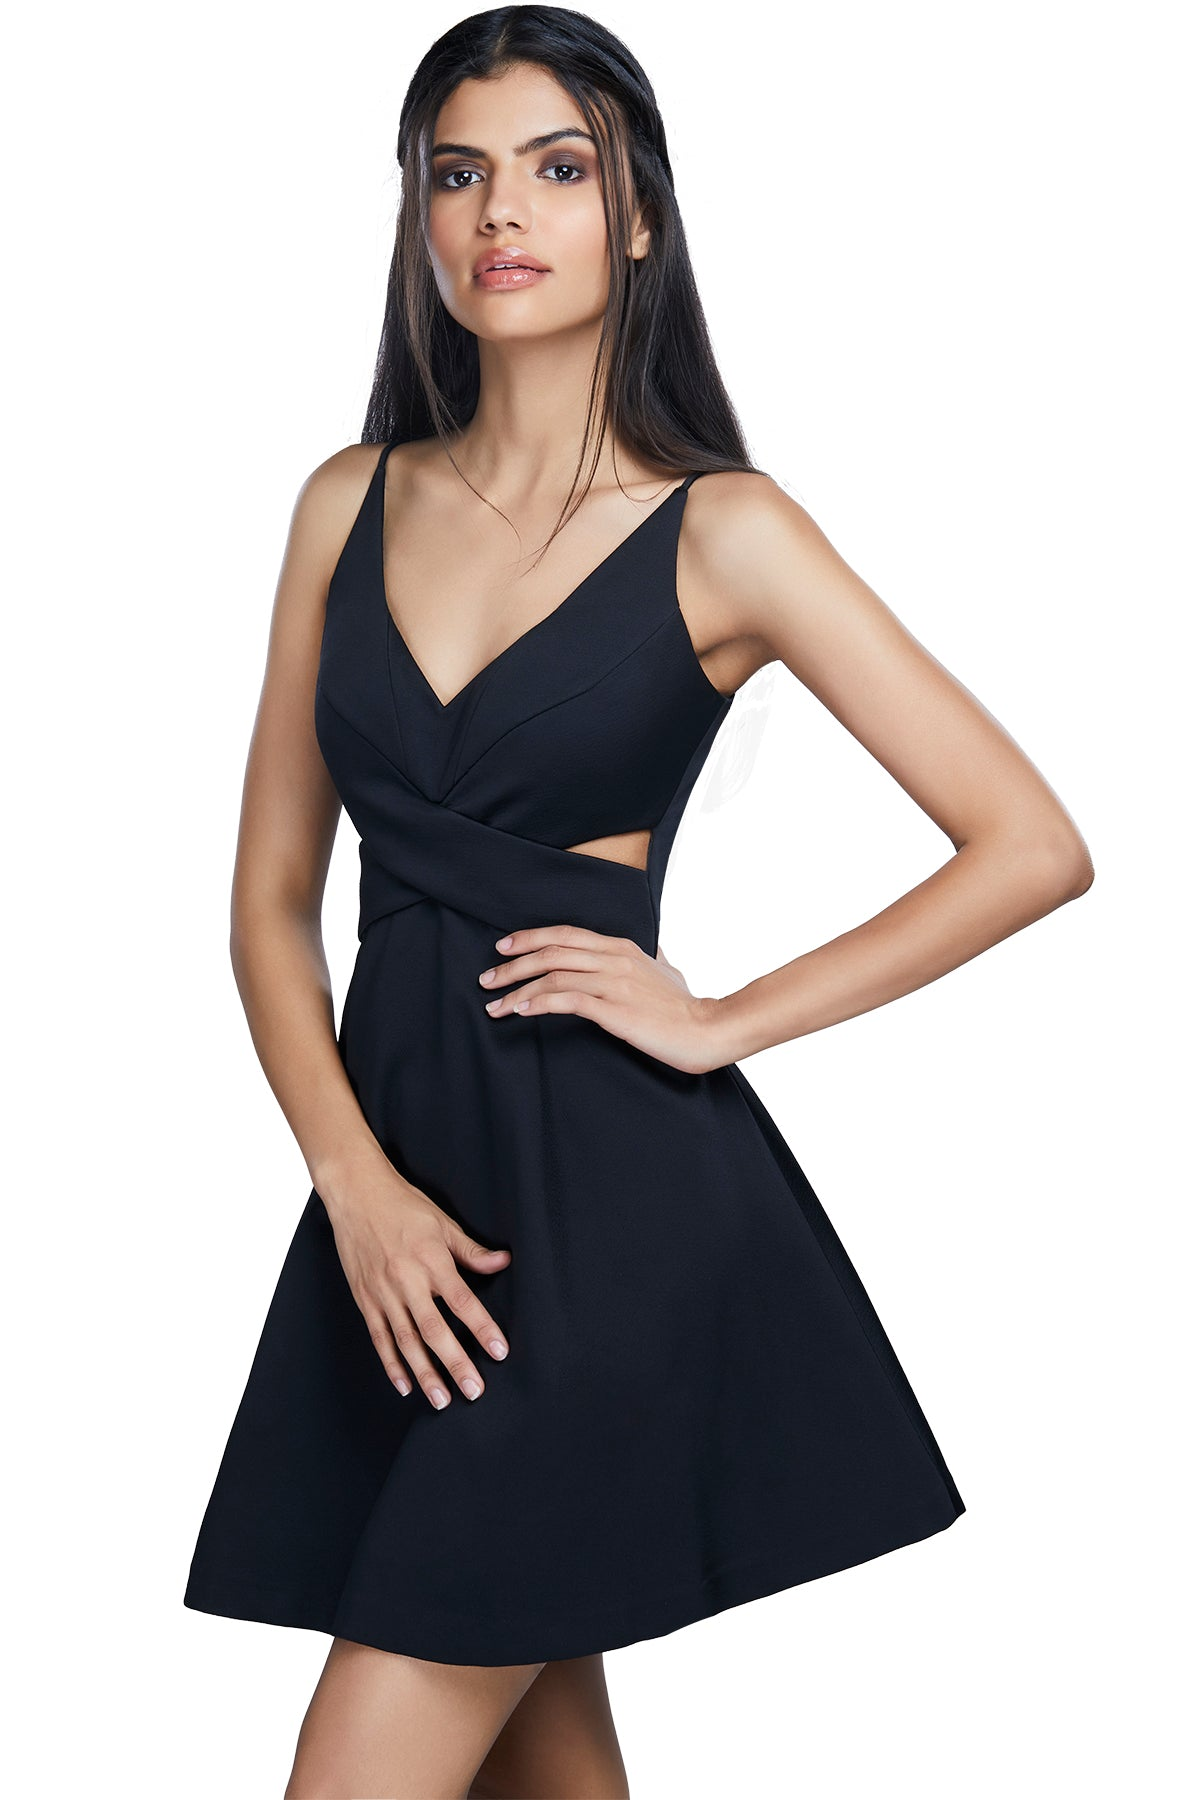 Play peak-a-boo in this flirty, fun black v-neck skater dress with cut-out at the waist.